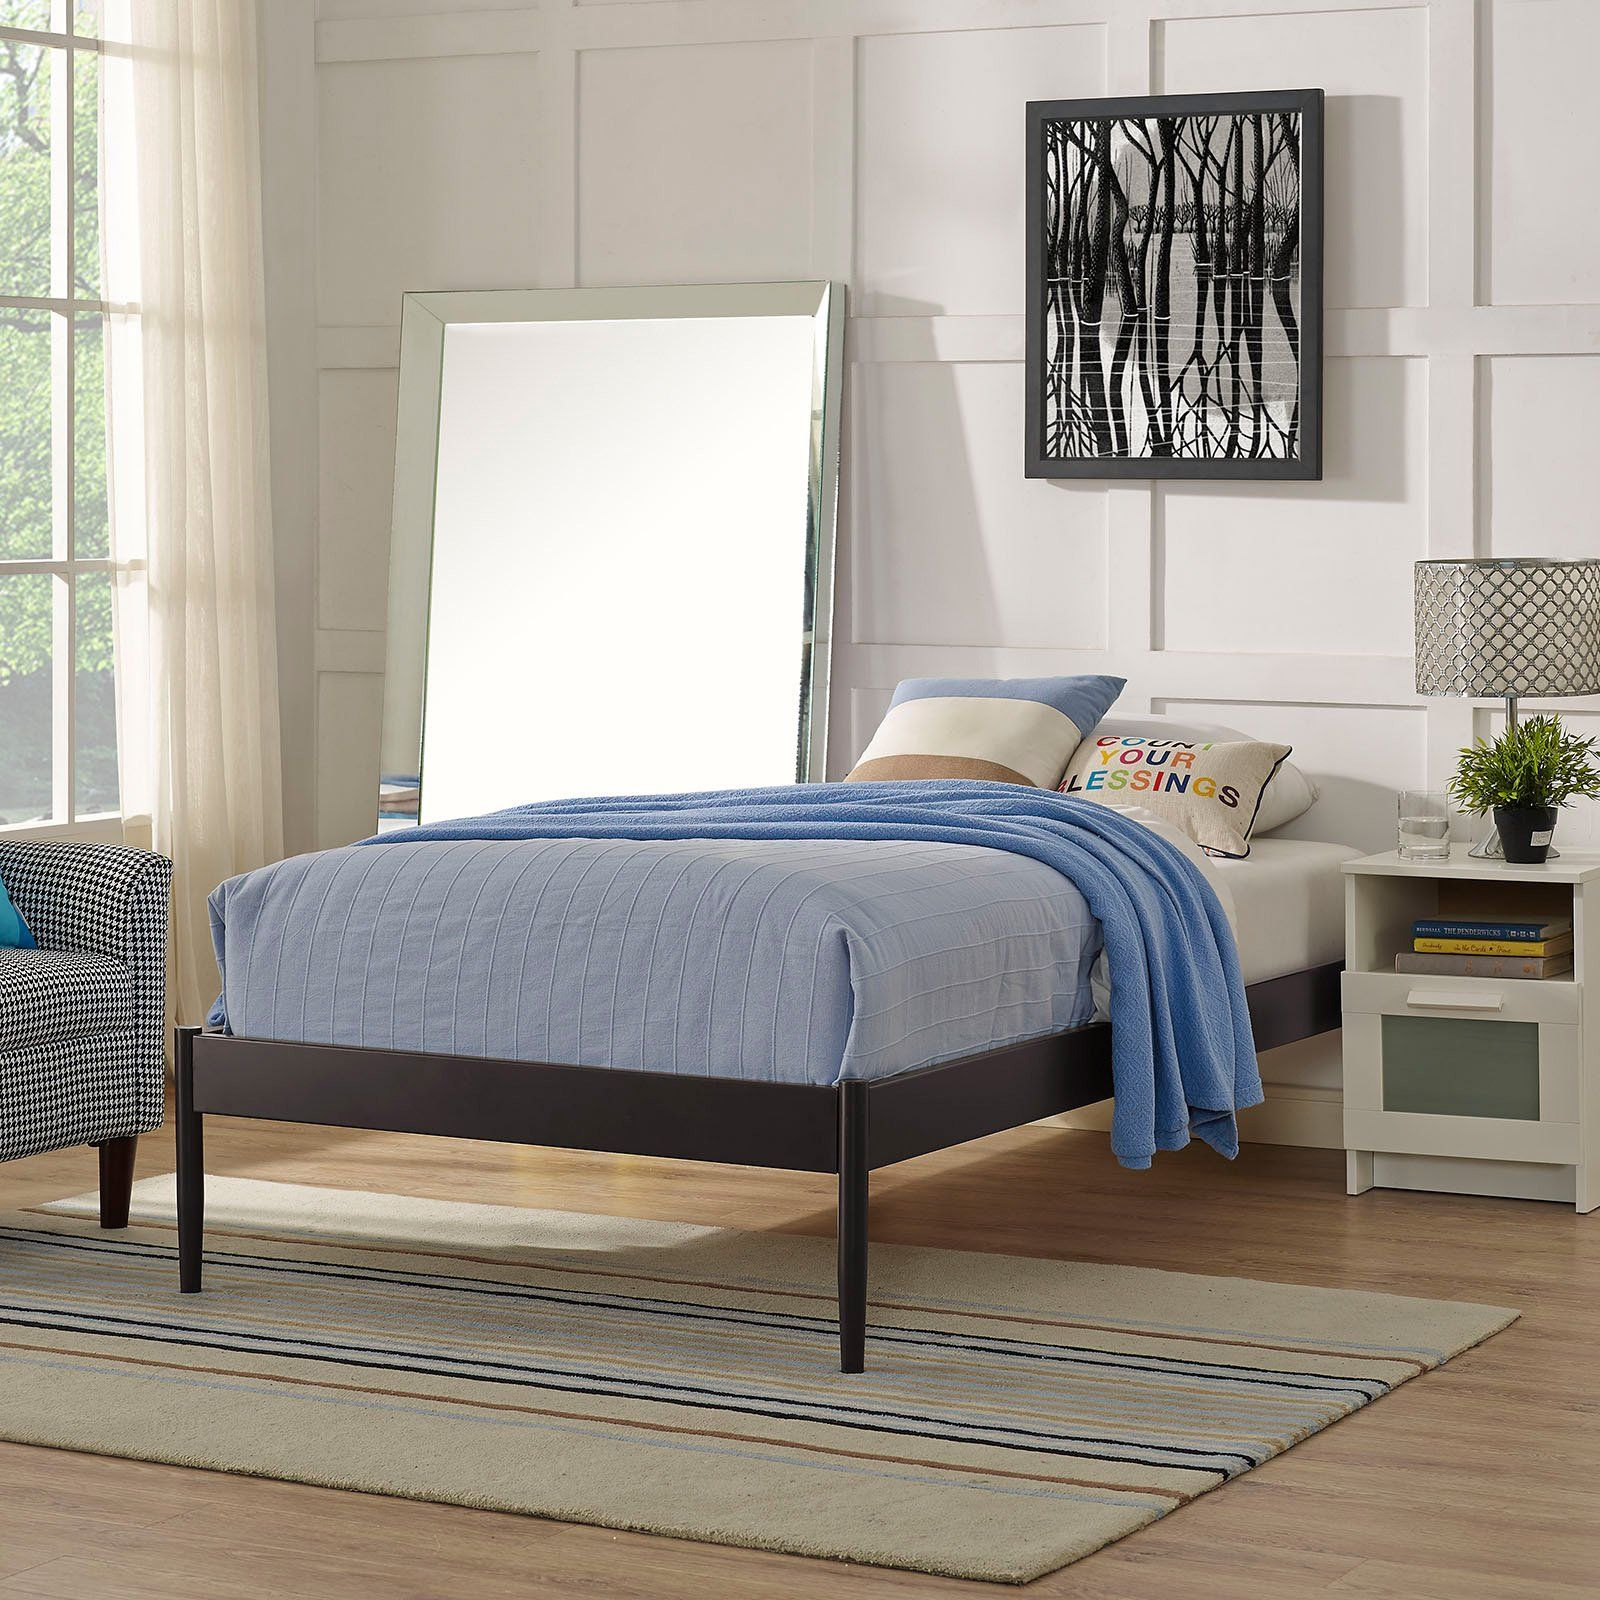 Modway Elsie Platform Bed from Bed frame